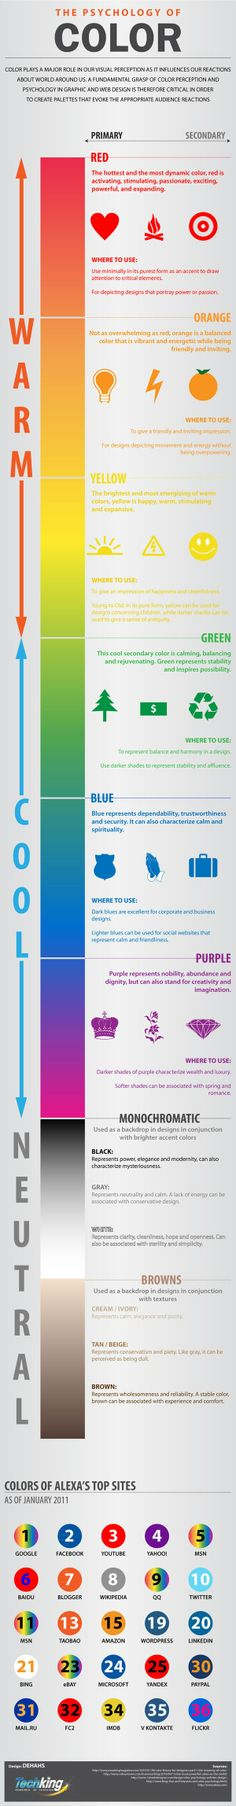 The psychology of color #BusinessFibernetics